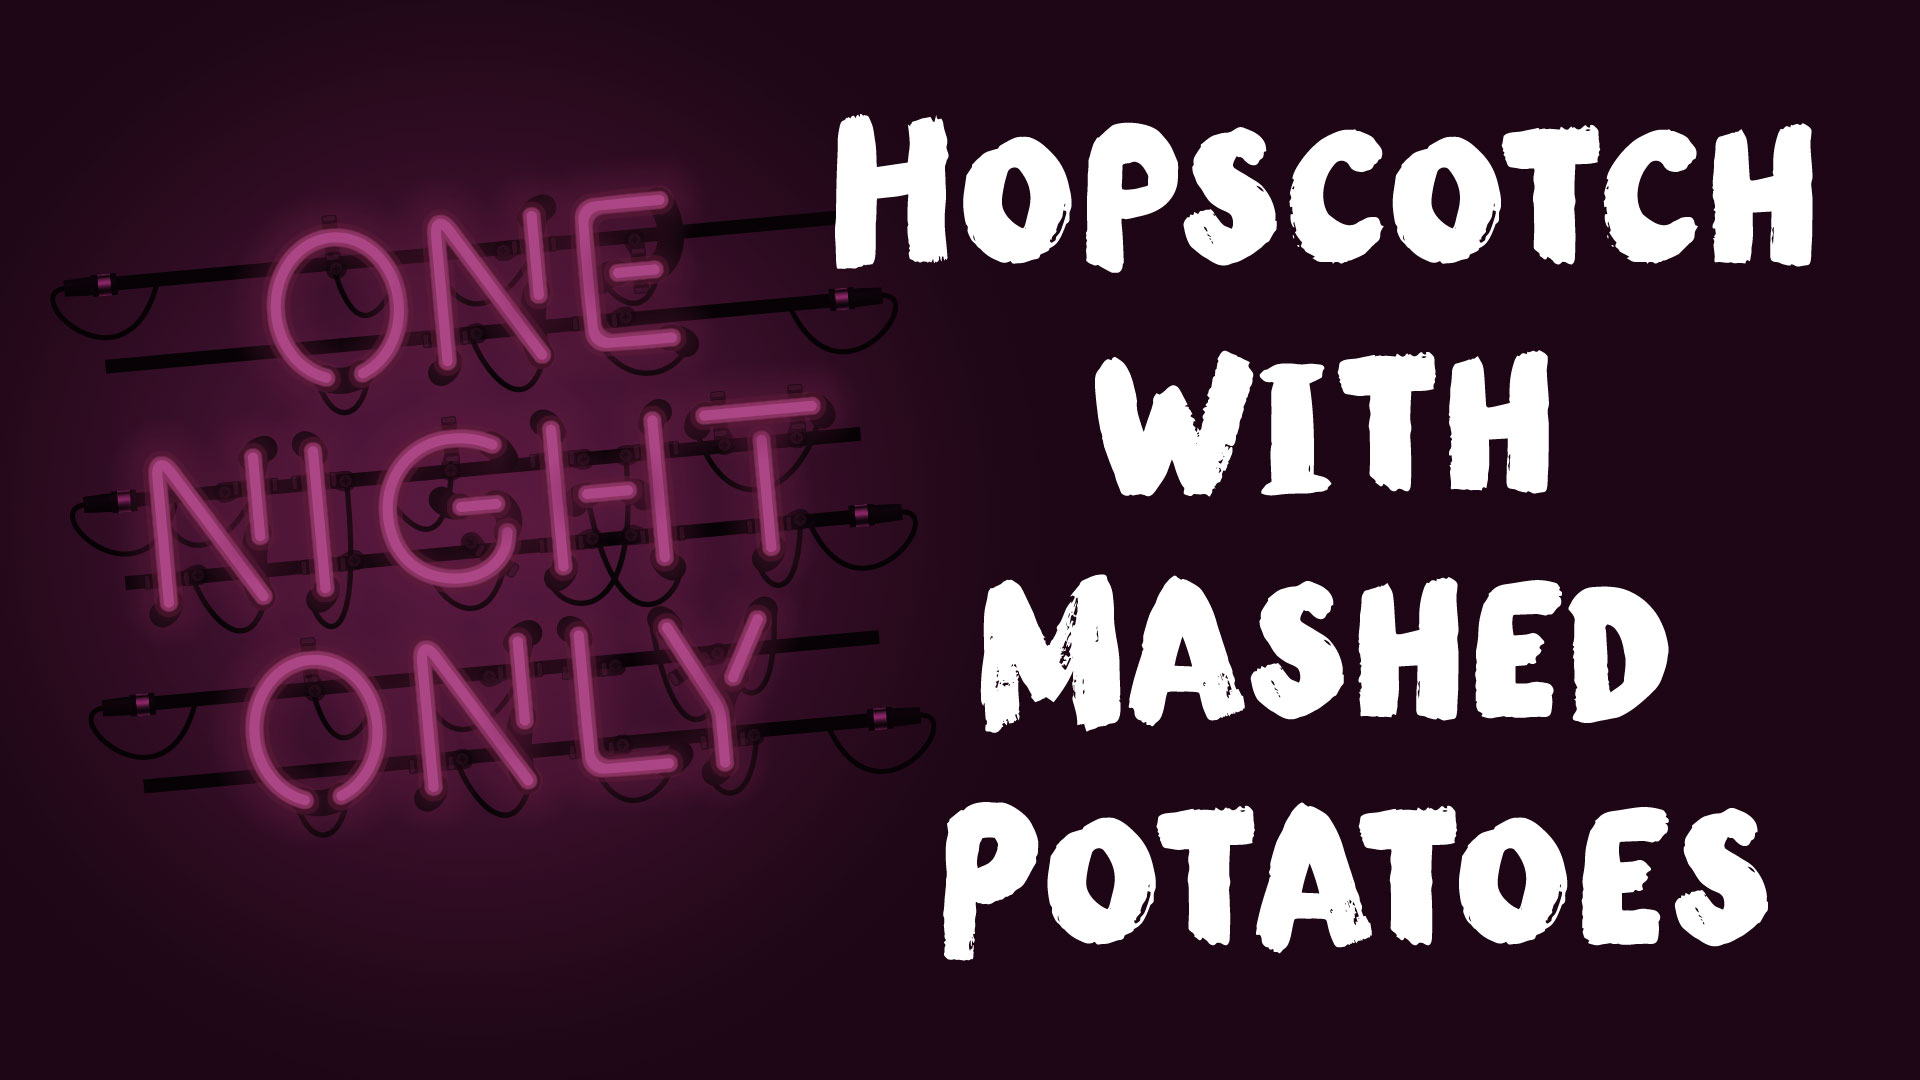 One Night Only: Hopscotch with Mashed Potatoes